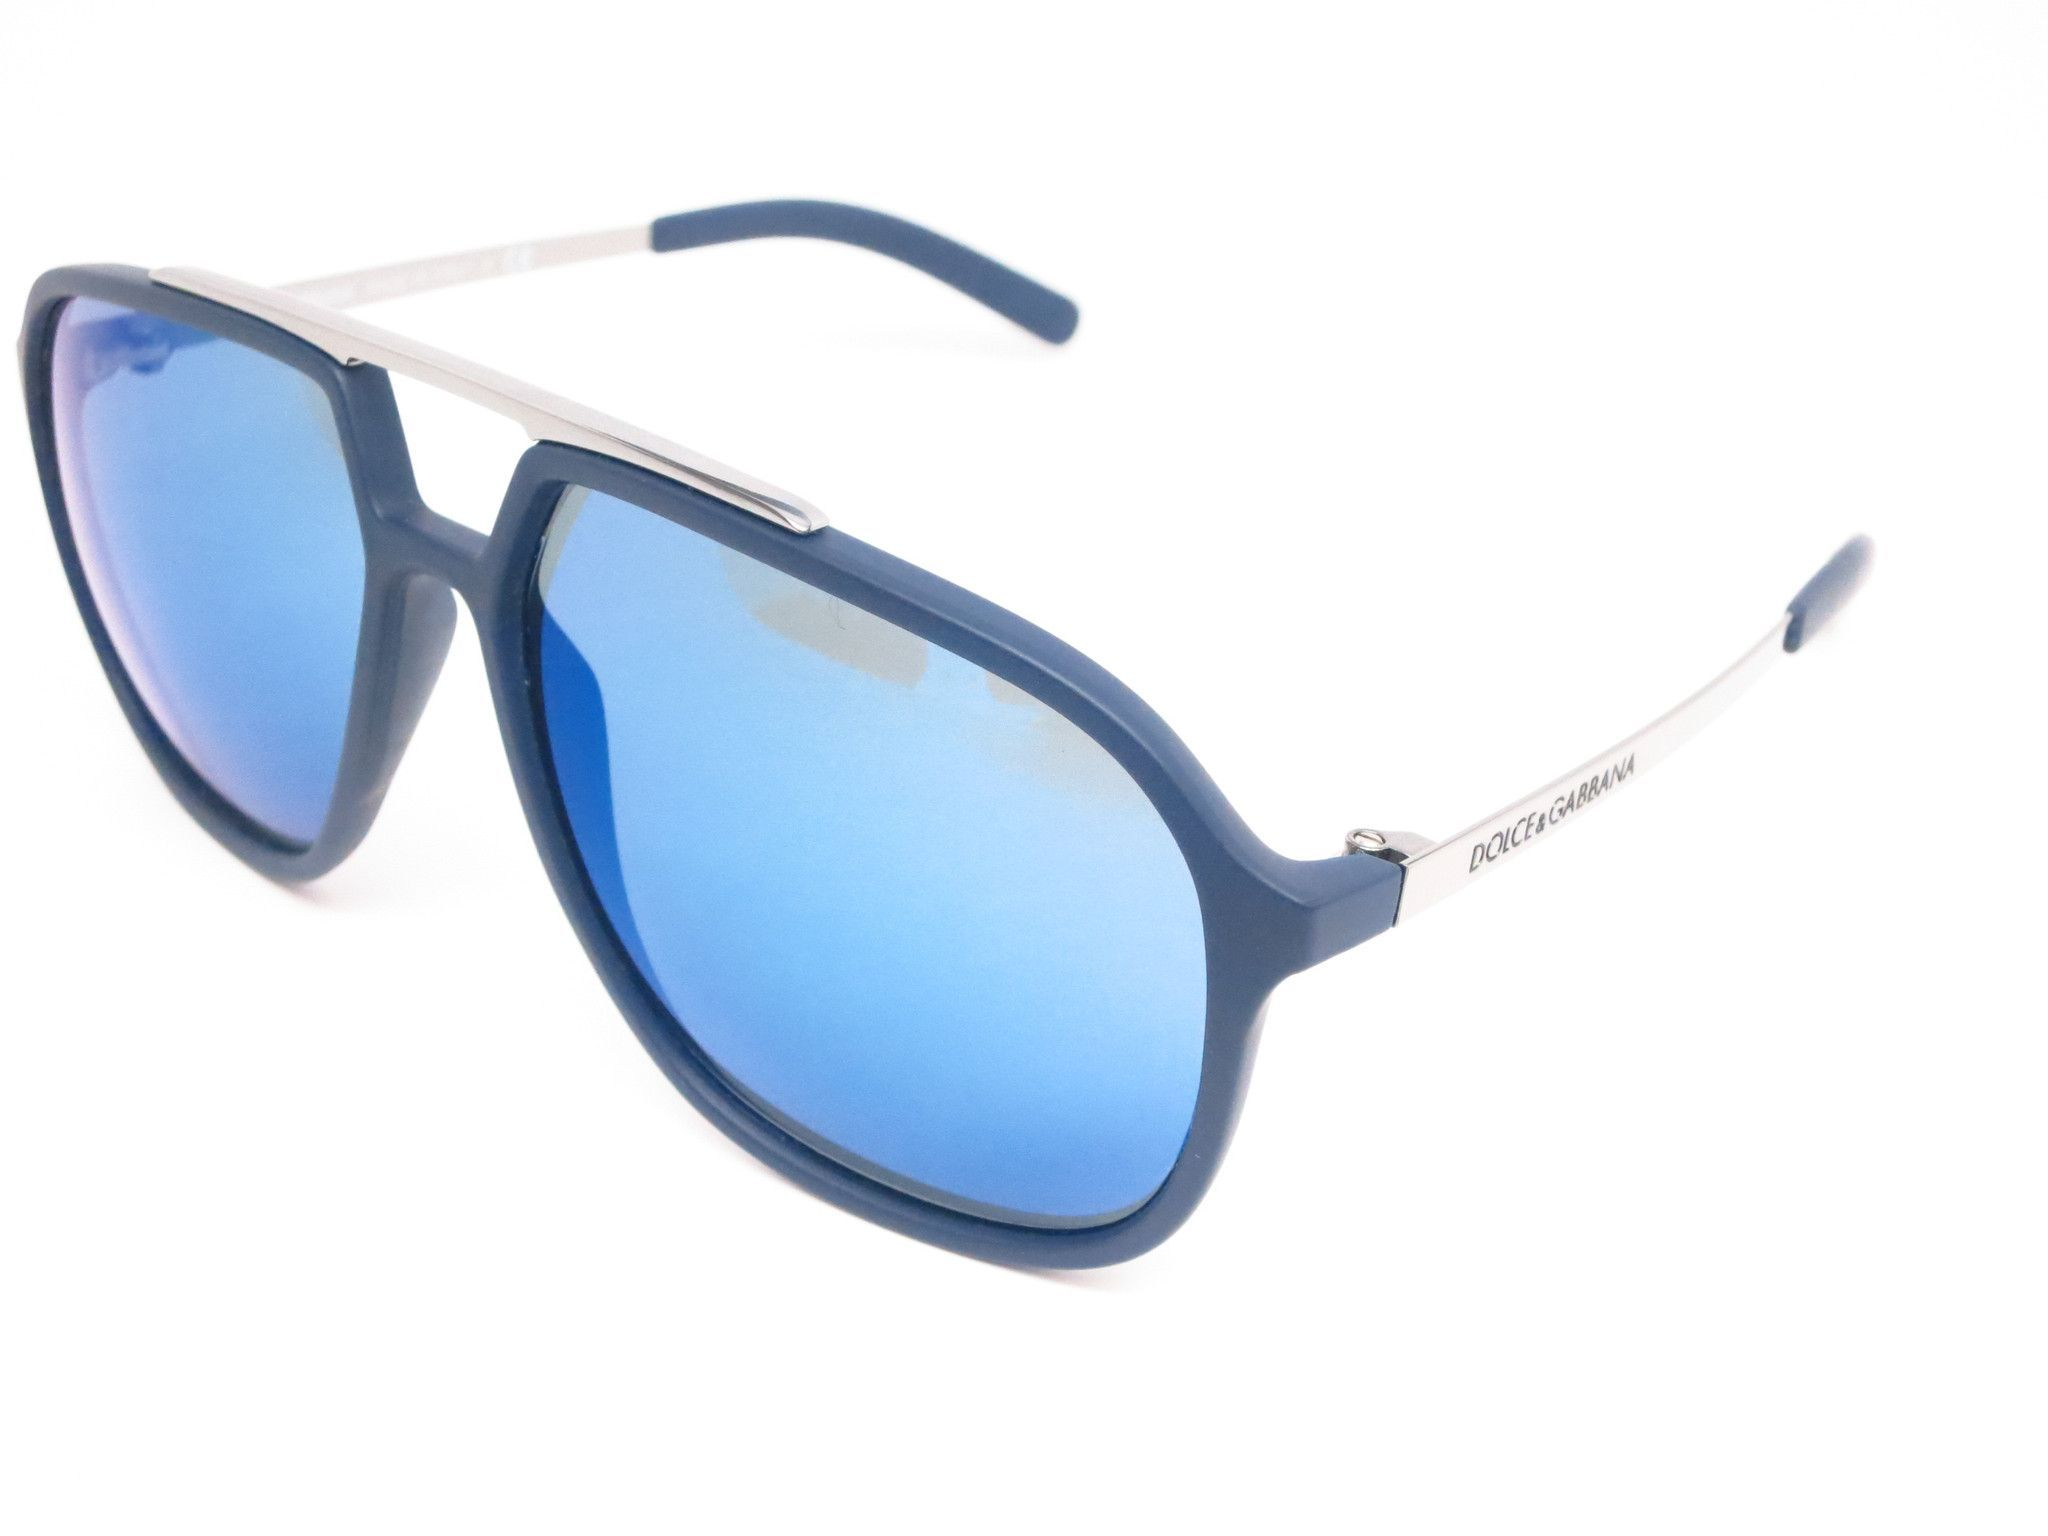 ed7164b23ca6 ... Eye Heart Shades. Dolce   Gabbana DG 6088 2650 55 Blue Rubber Sunglasses